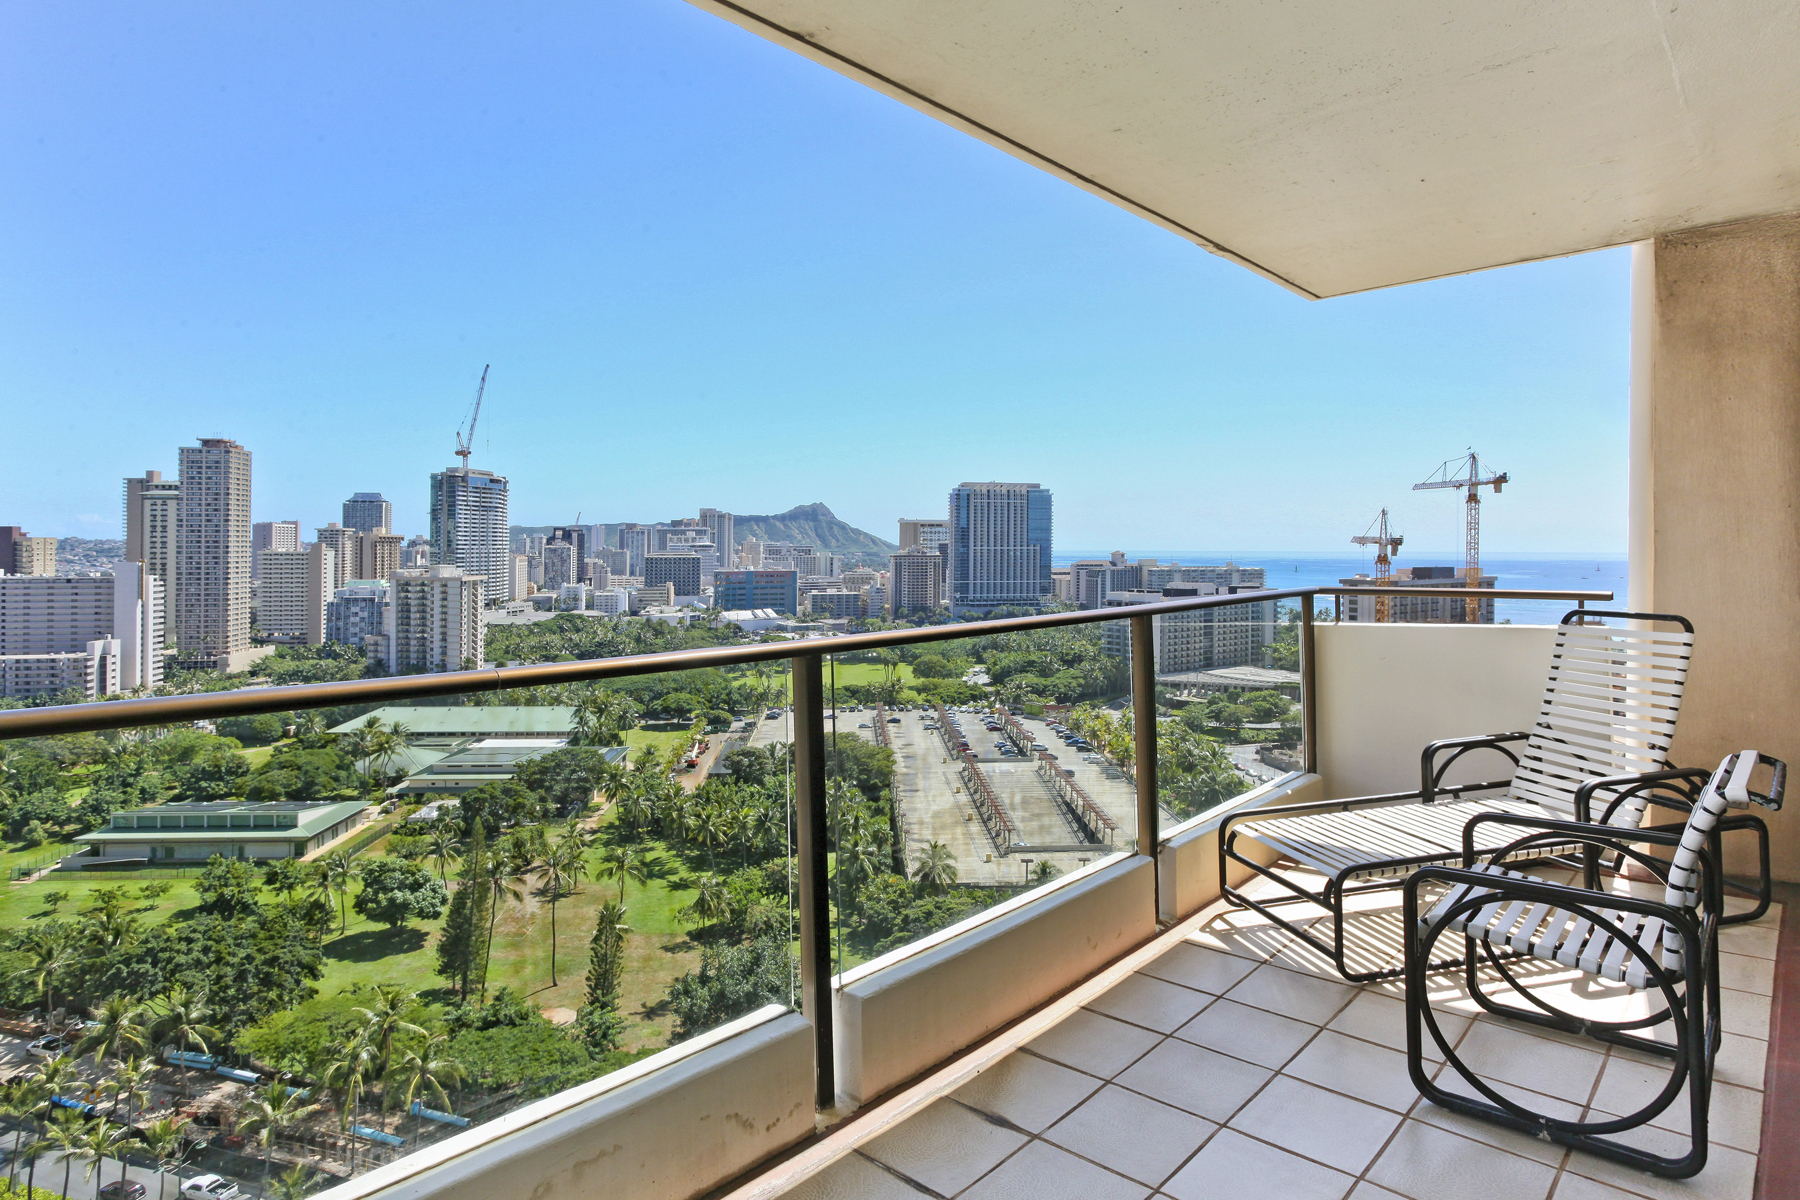 Copropriété pour l Vente à Picturesque Wailana at Waikiki Penthouse 1860 Ala Moana Boulevard #PH 2301 Waikiki, Honolulu, Hawaii, 96815 États-Unis